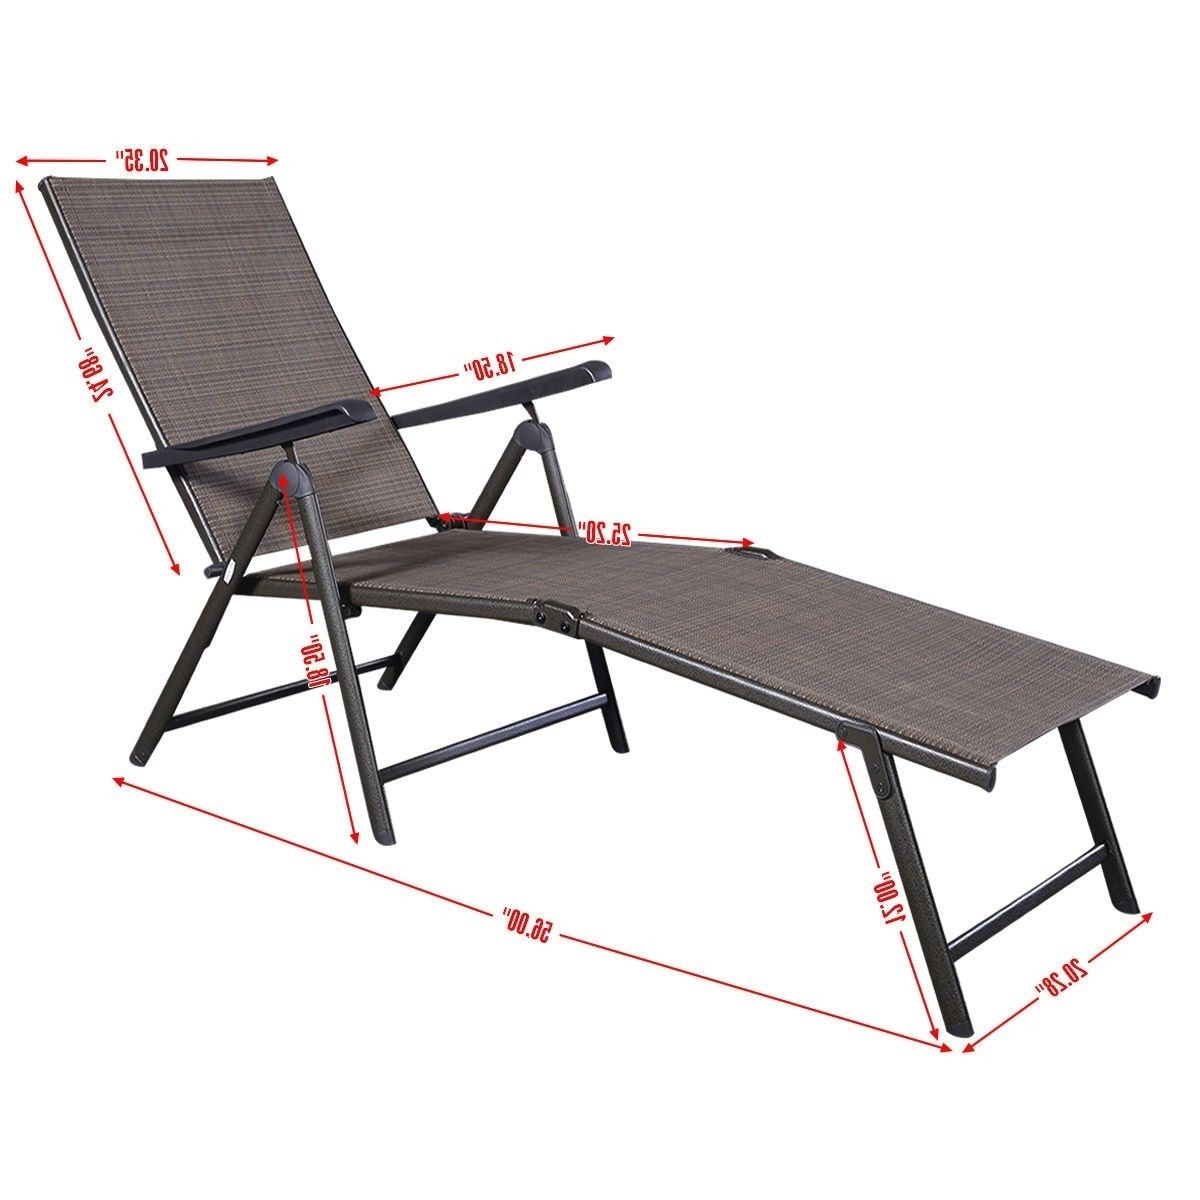 Newest Patio Furniture Textilene Adjustable Pool Chaise Lounge Chair Pertaining To Adjustable Pool Chaise Lounge Chair Recliners (View 8 of 15)